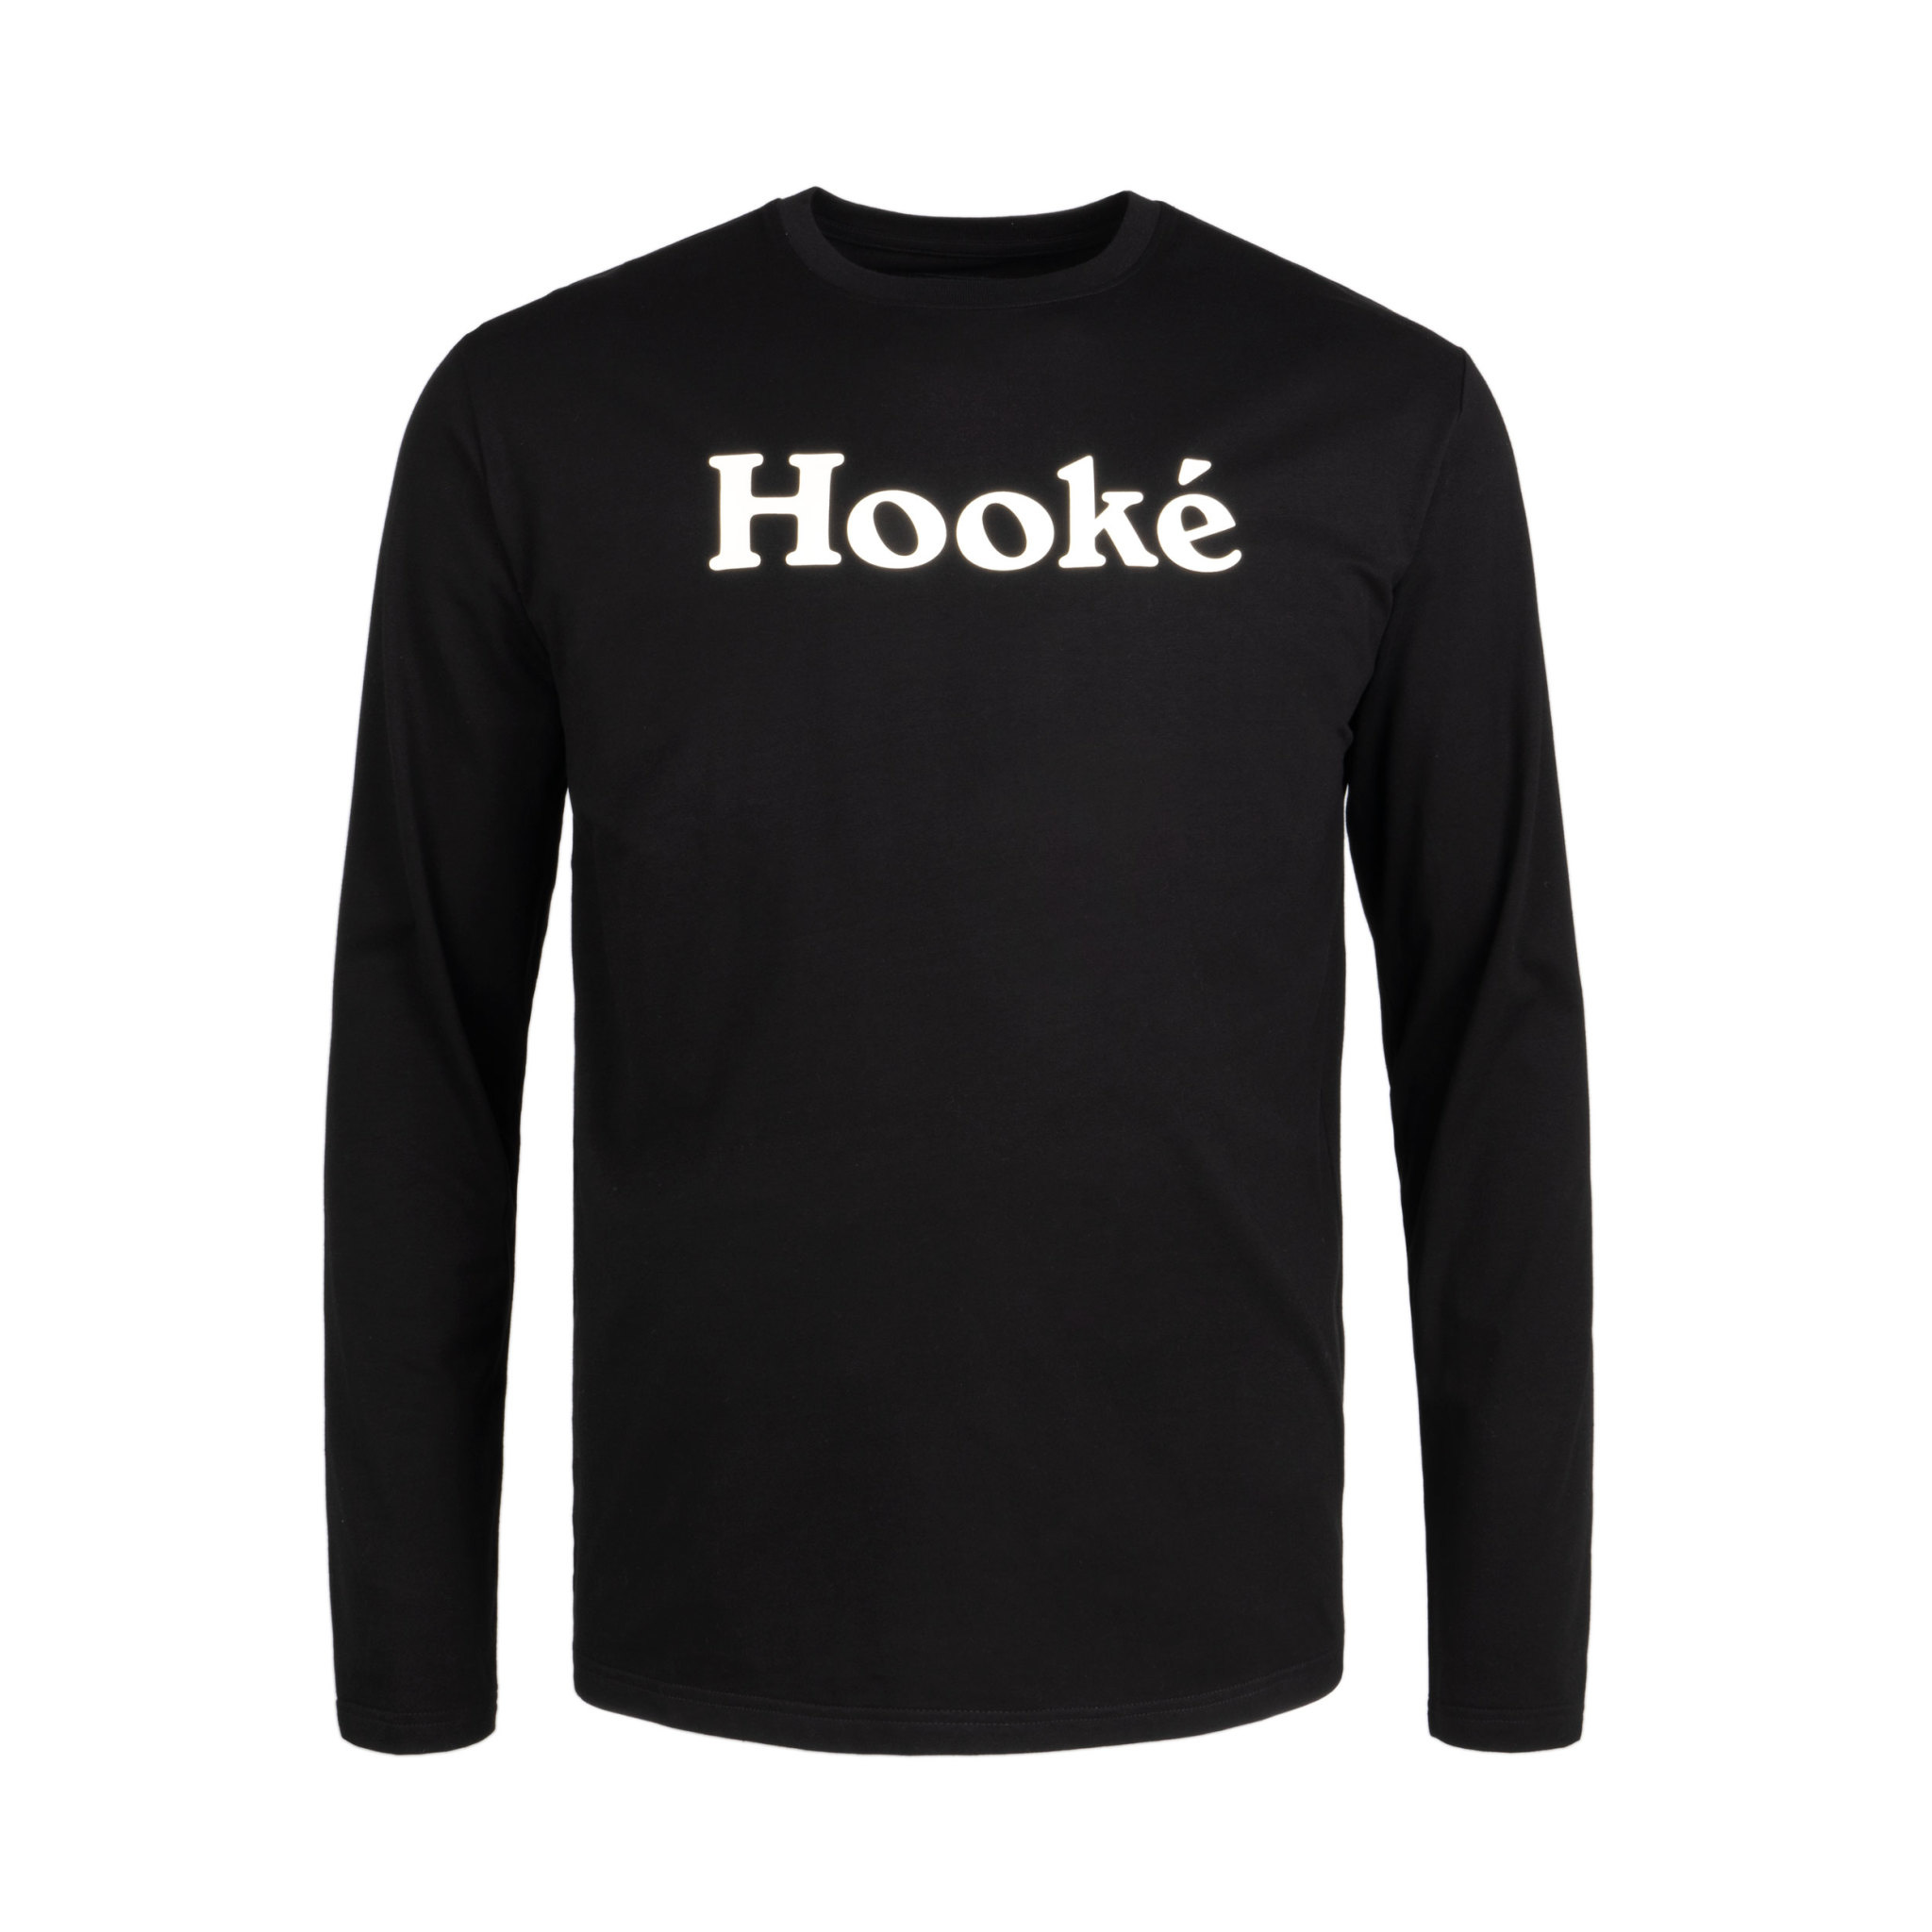 Hooké Original Long Sleeve Black